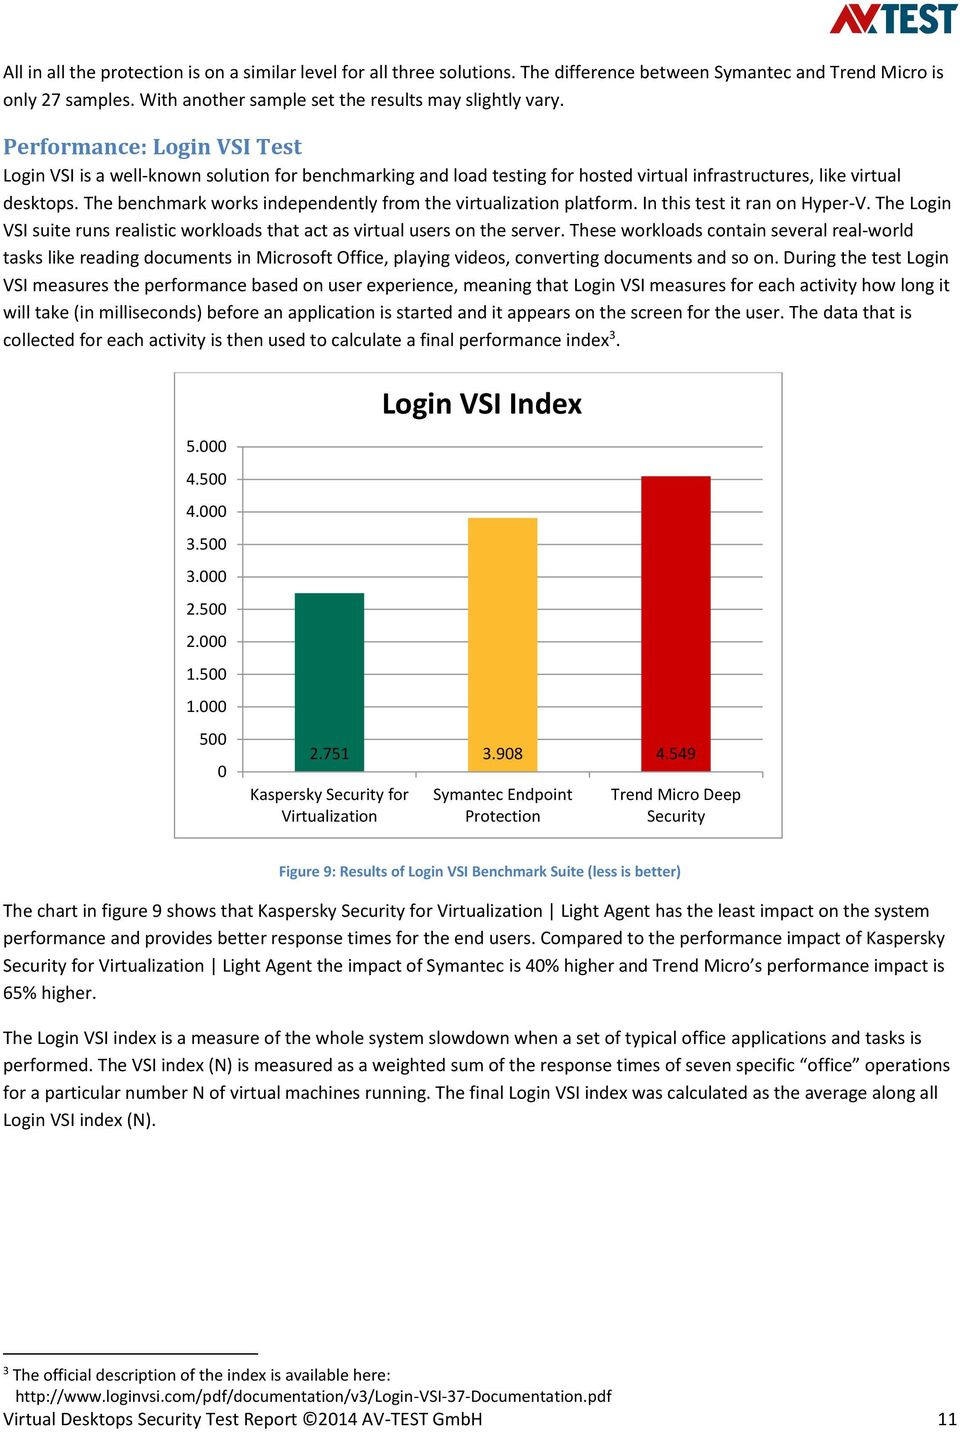 The benchmark works independently from the virtualization platform. In this test it ran on Hyper-V. The Login VSI suite runs realistic workloads that act as virtual users on the server.